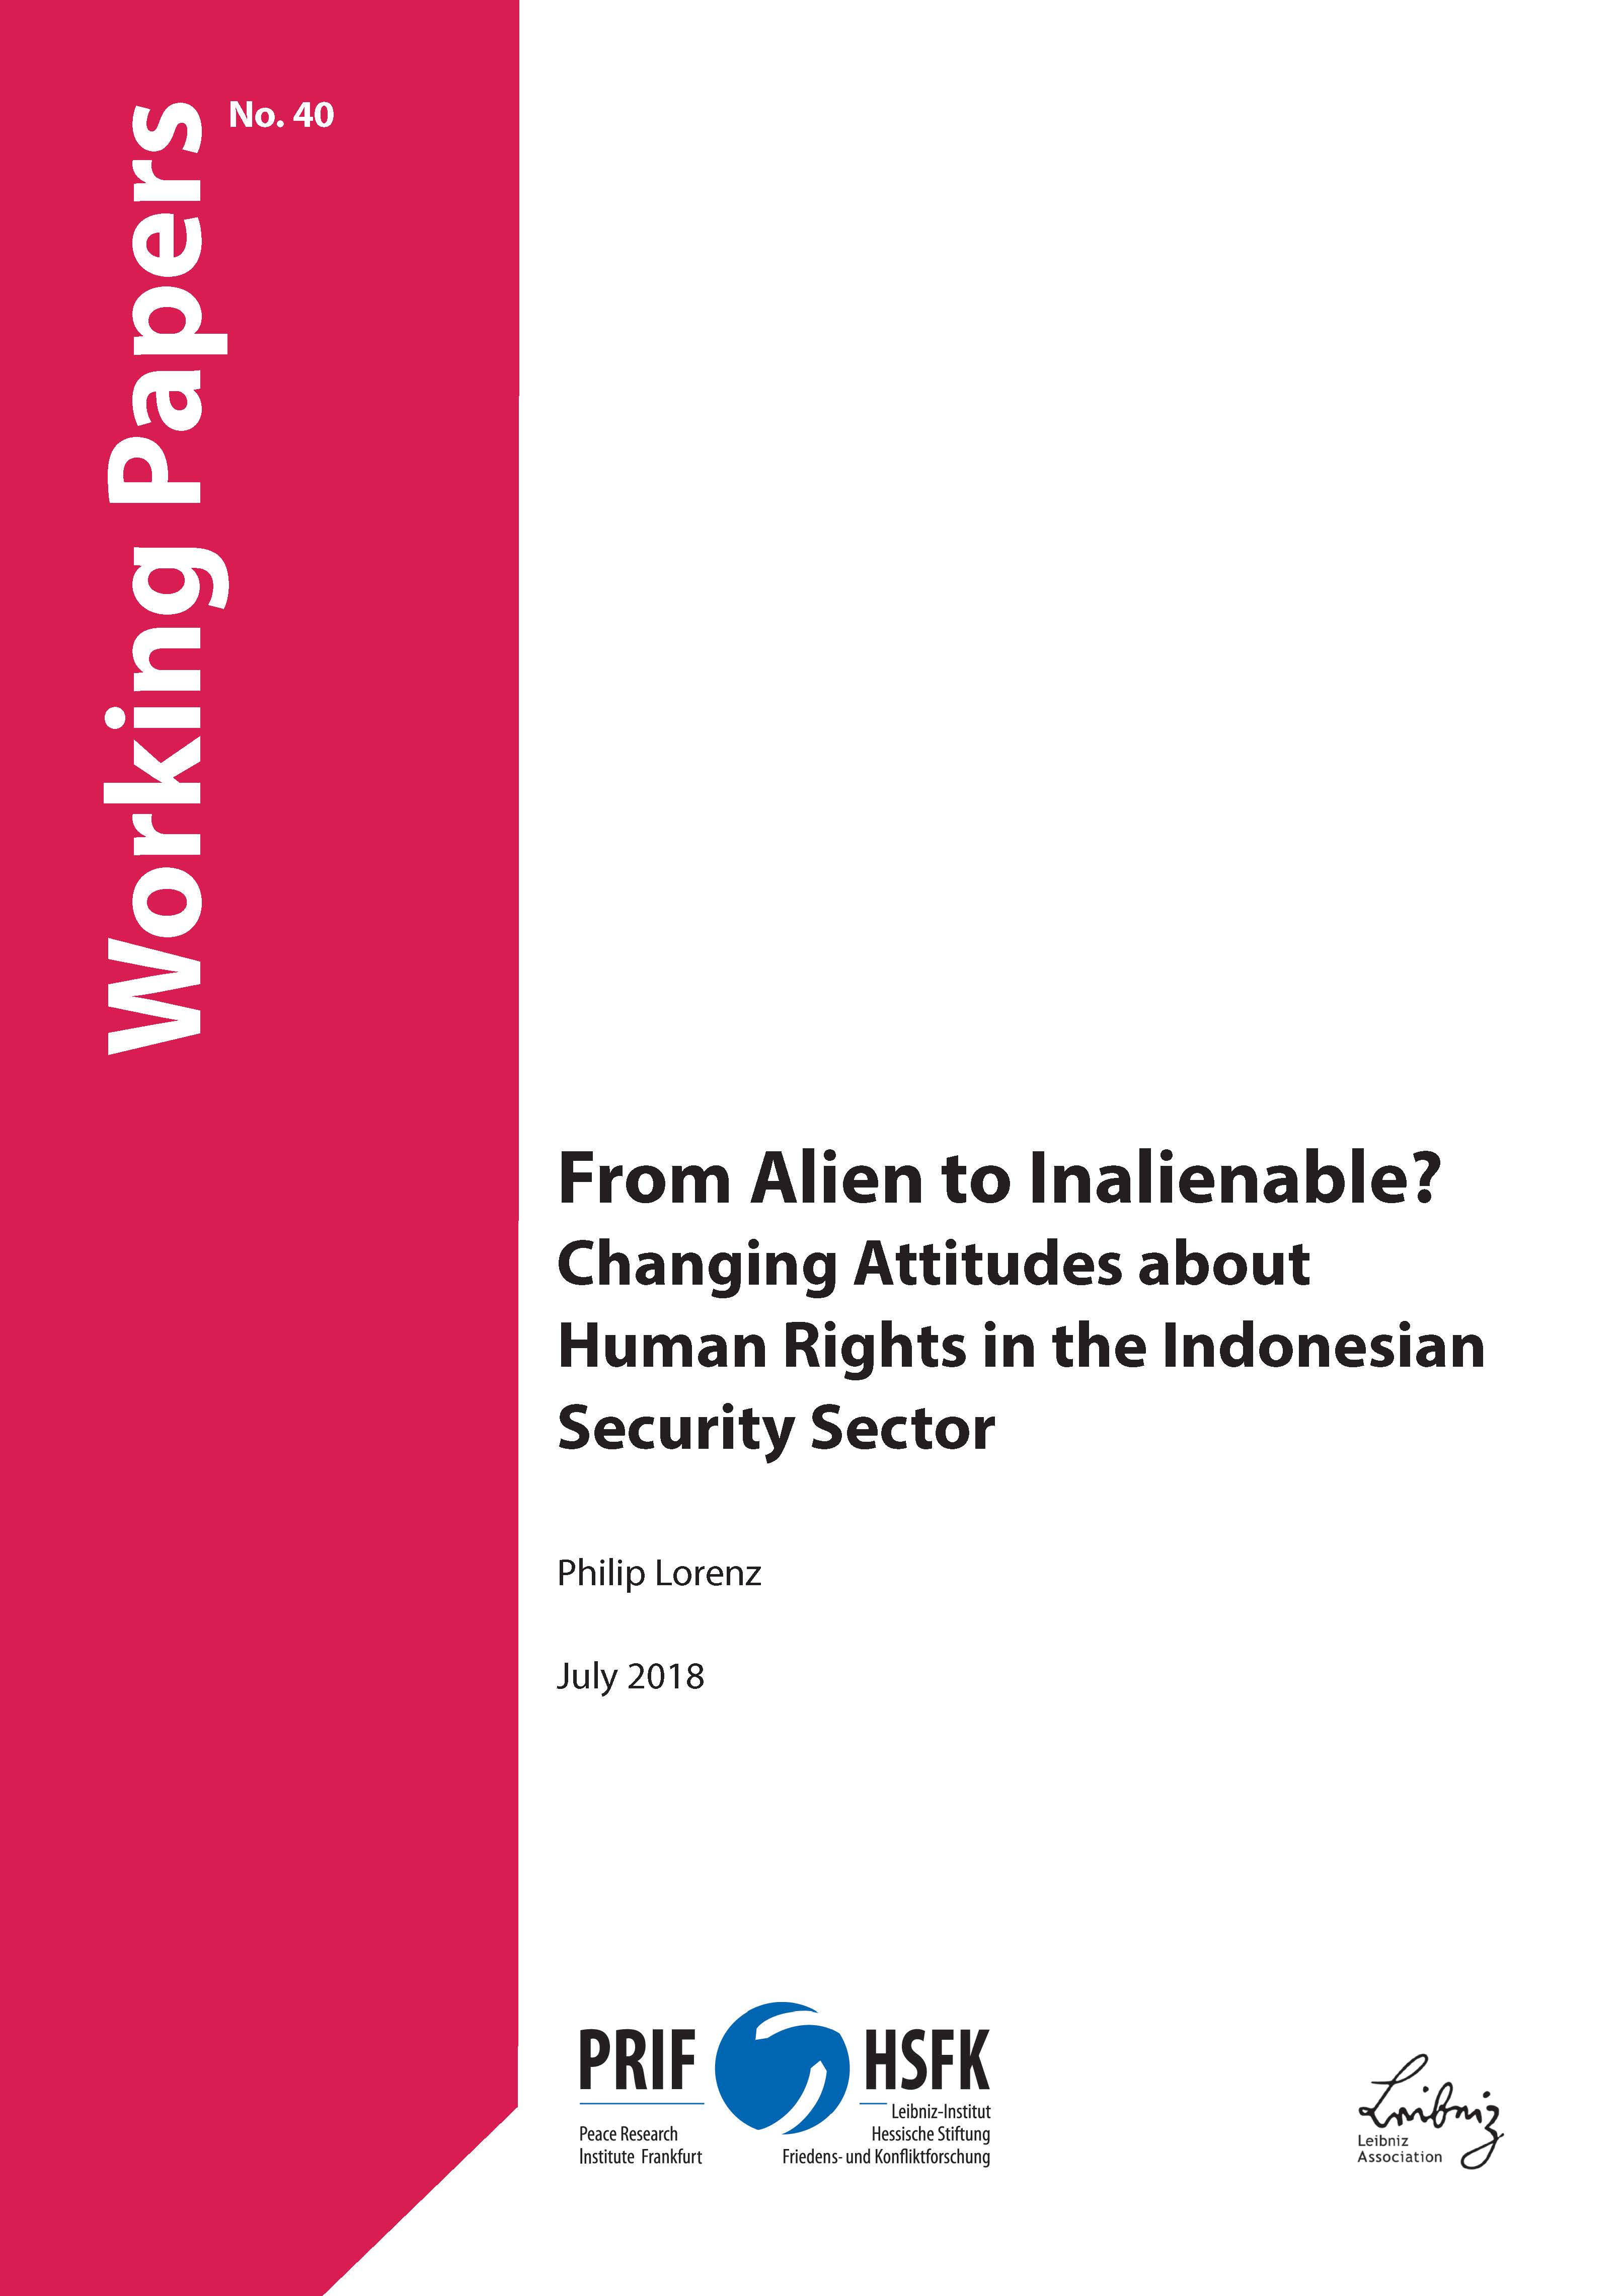 Download: From Alien to Inalienable?